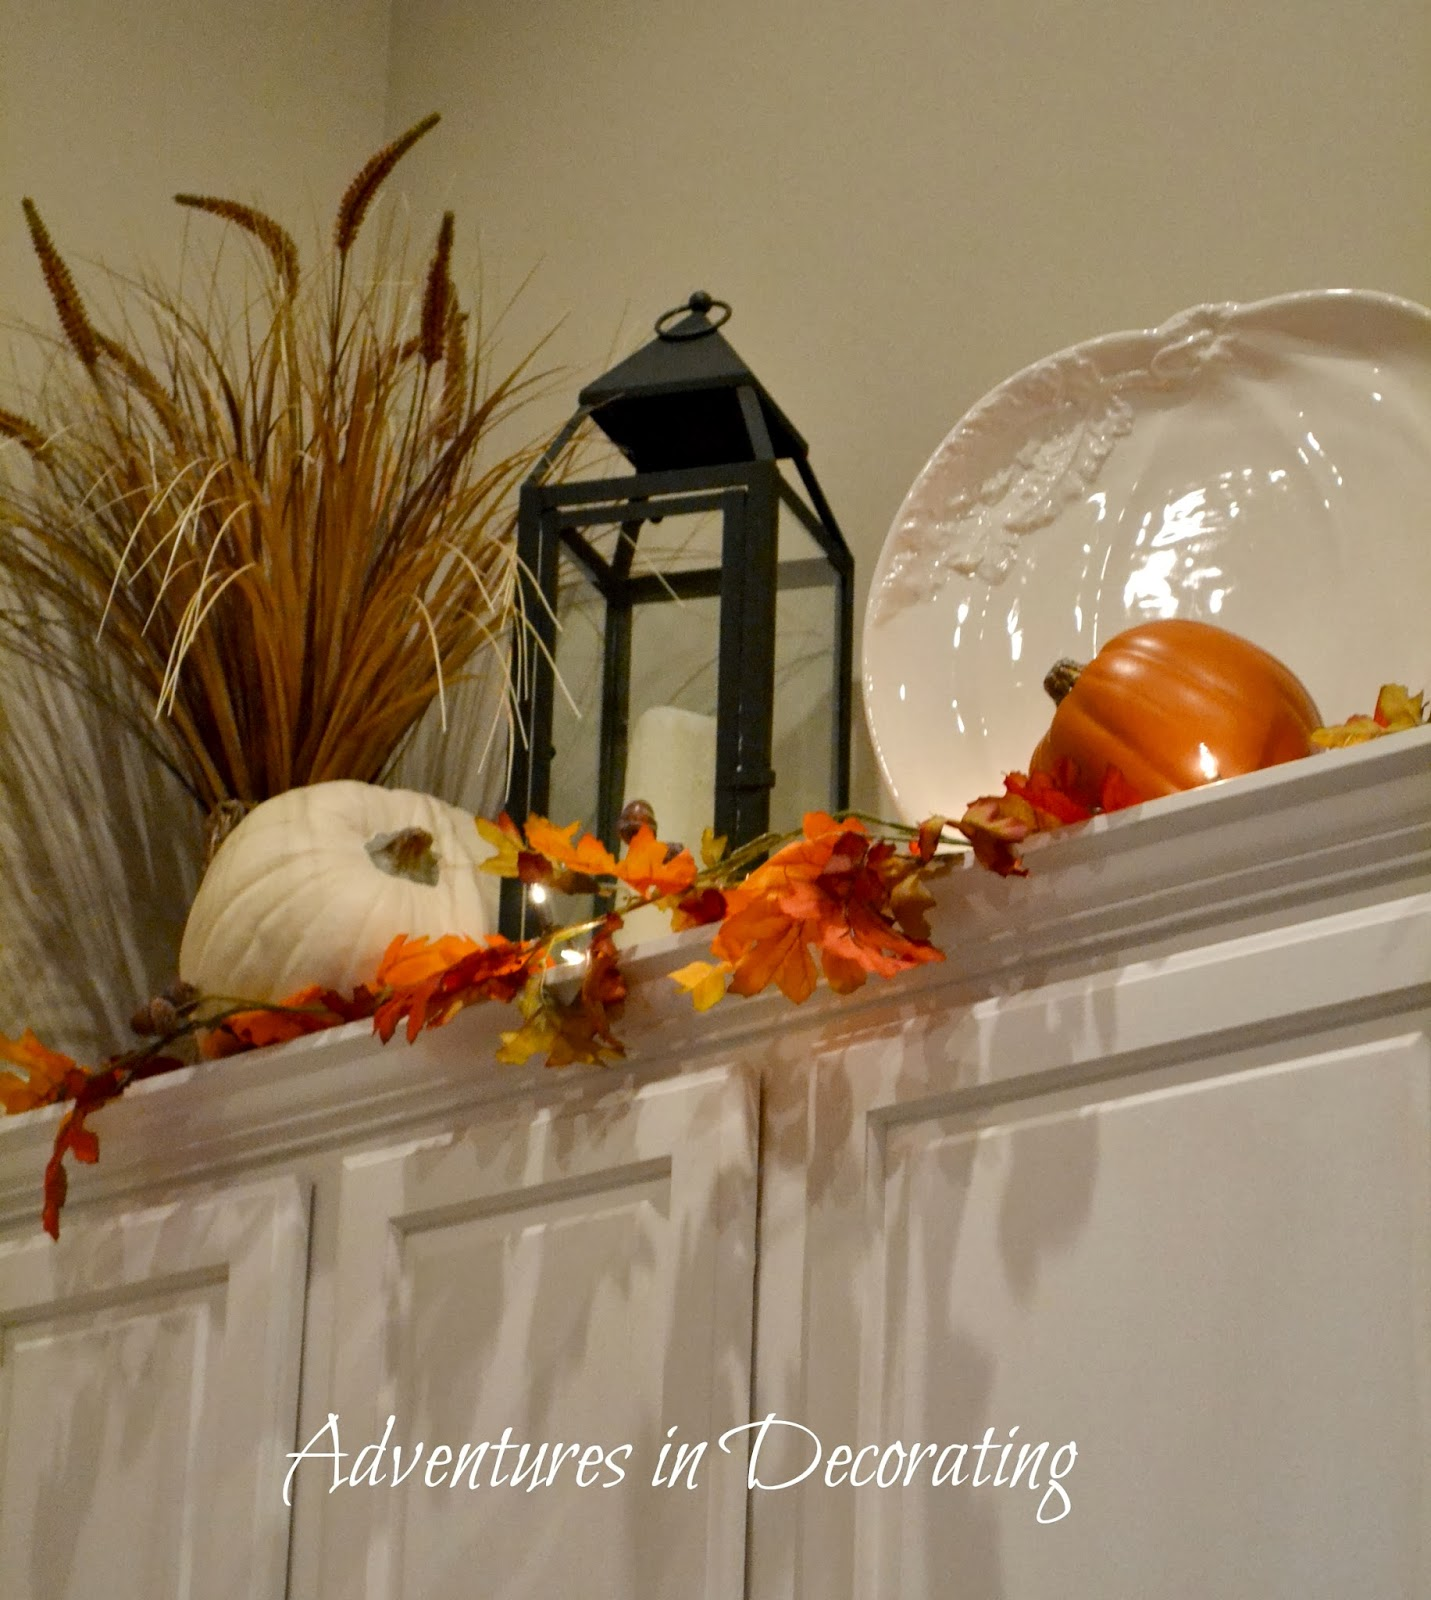 Kitchen Decor For Fall: Adventures In Decorating: Our Fall Kitchen